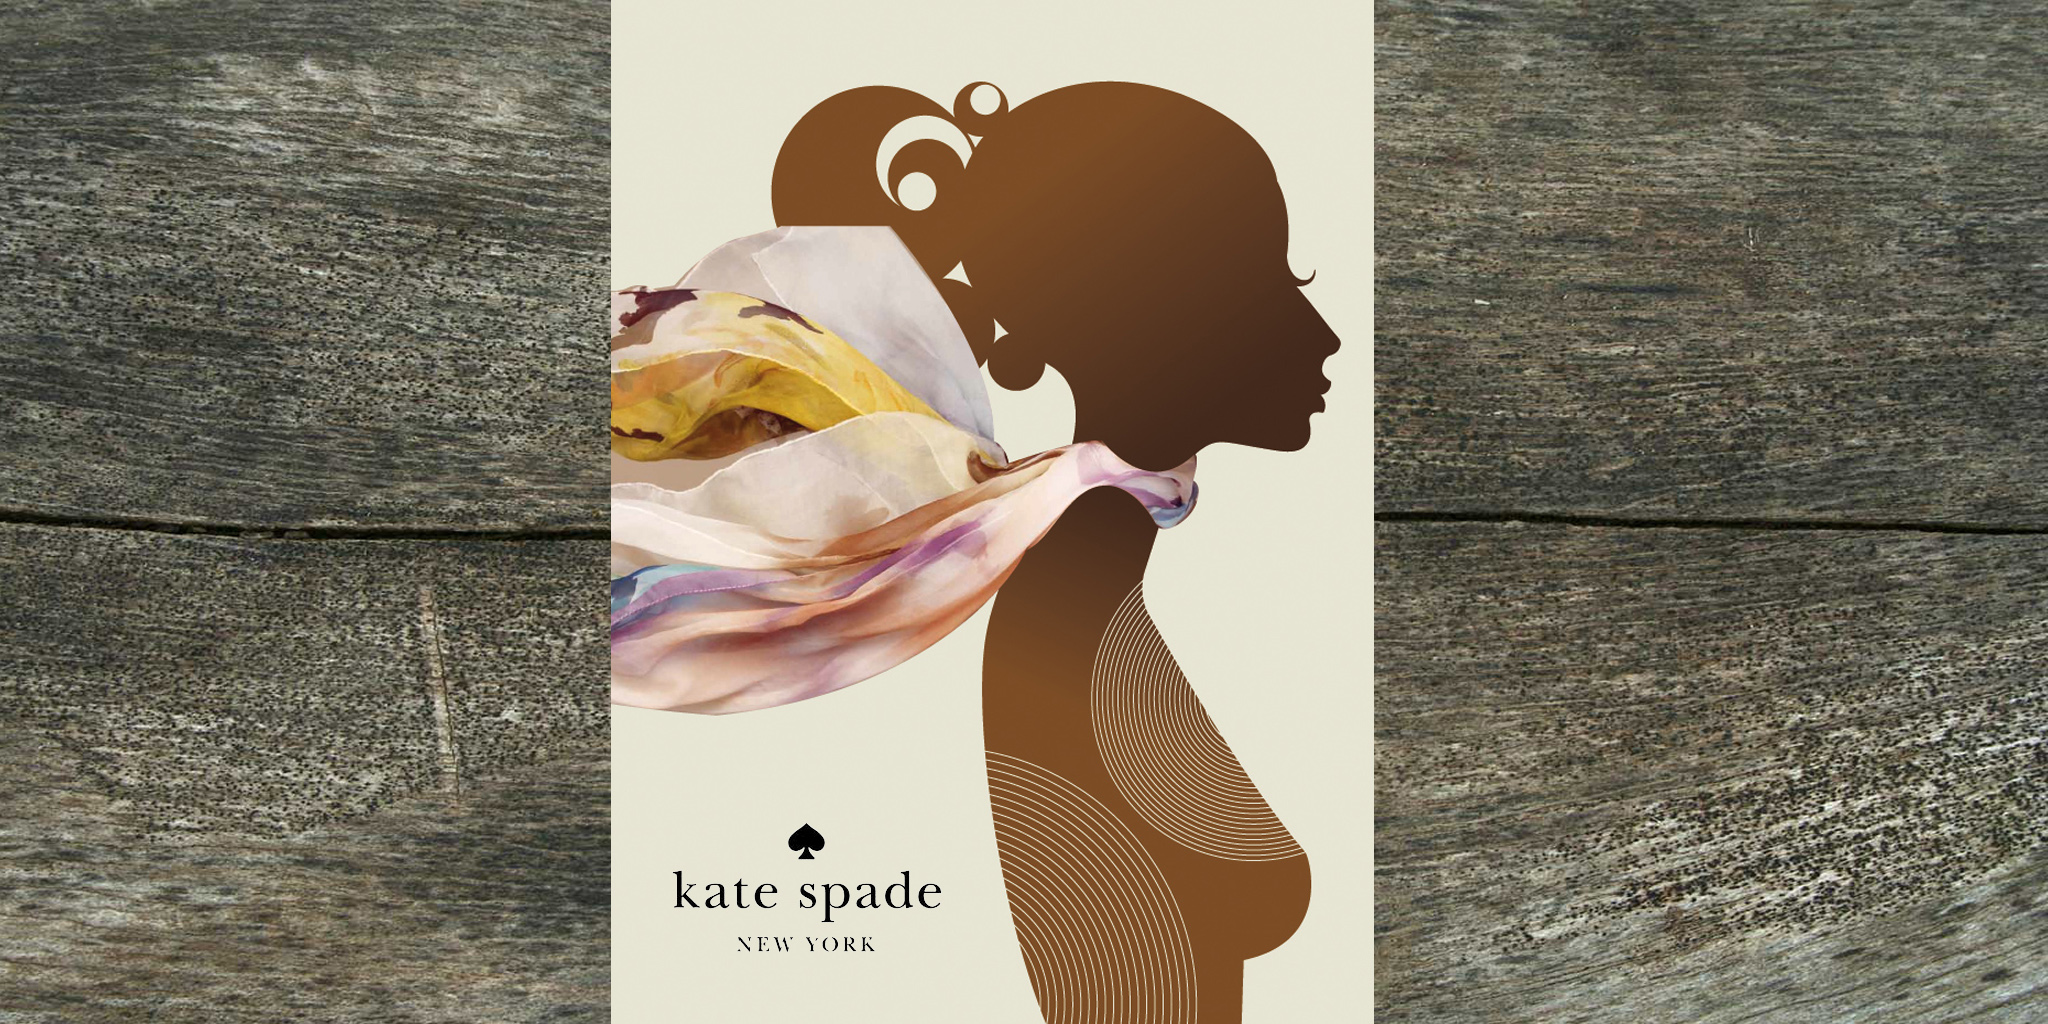 ADVERTISING  Kate Spade  To launch new fall scarves and color palettes, this proposed ad mixed 2D and 3D elements so that the color and depth of the product leapt off the page.